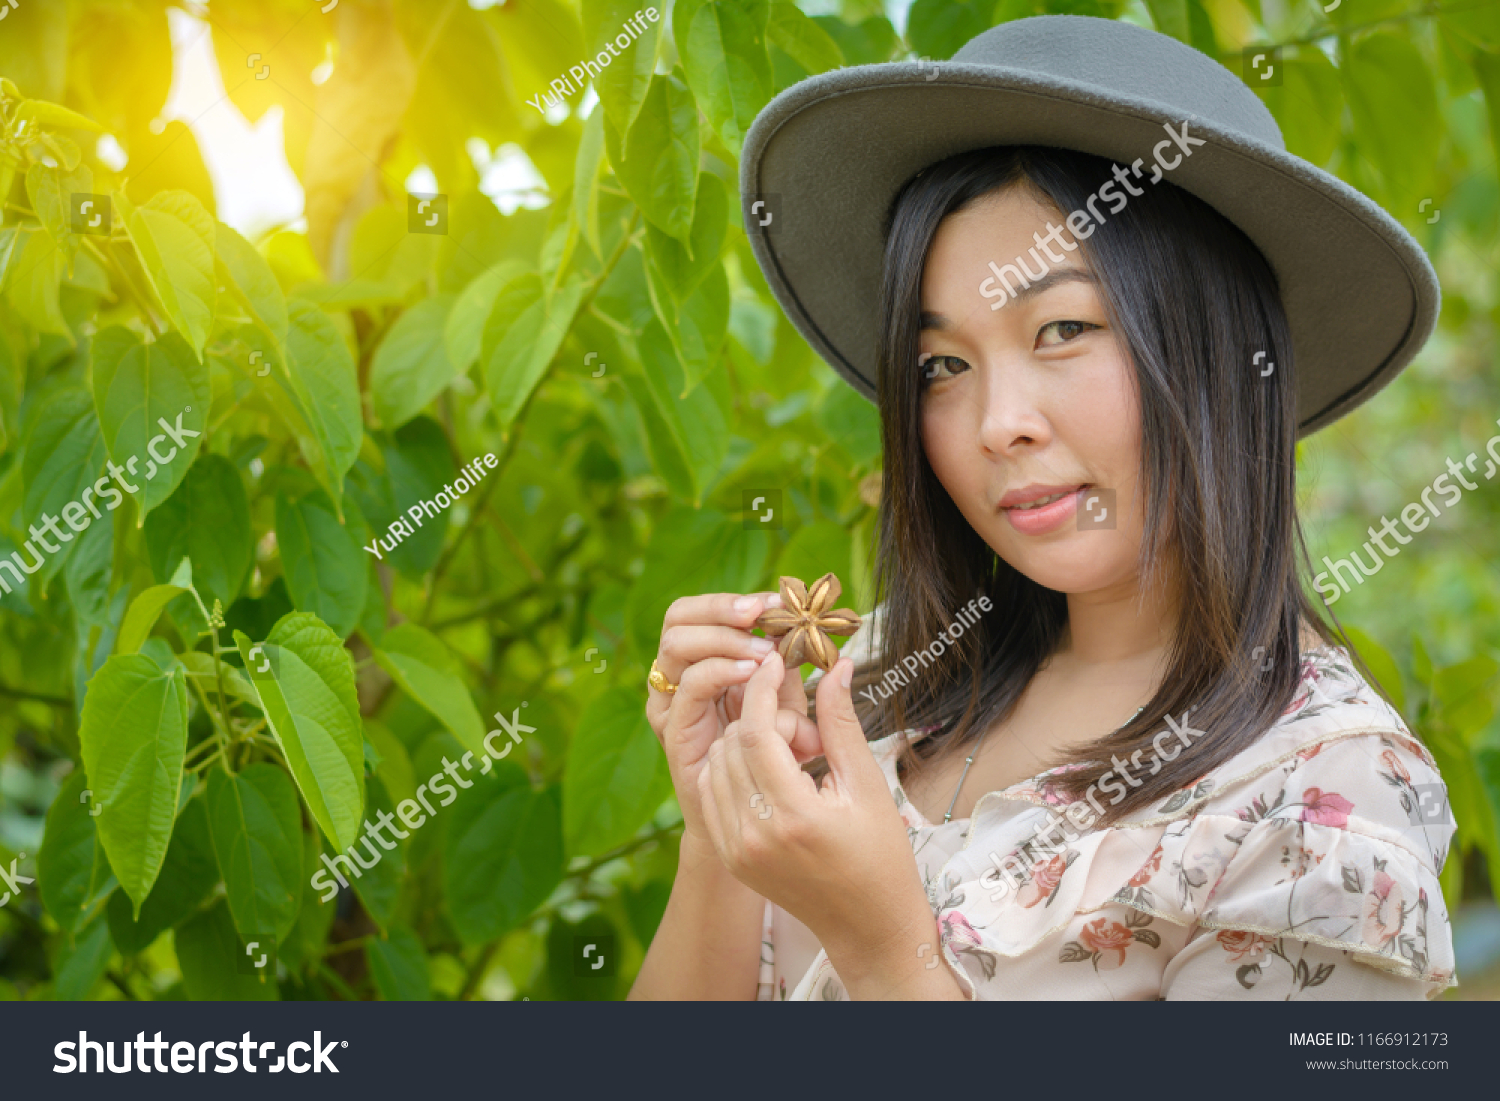 A woman portrait wearing a flower dress with gray retro hat and show the  seed of 6d41f1961239